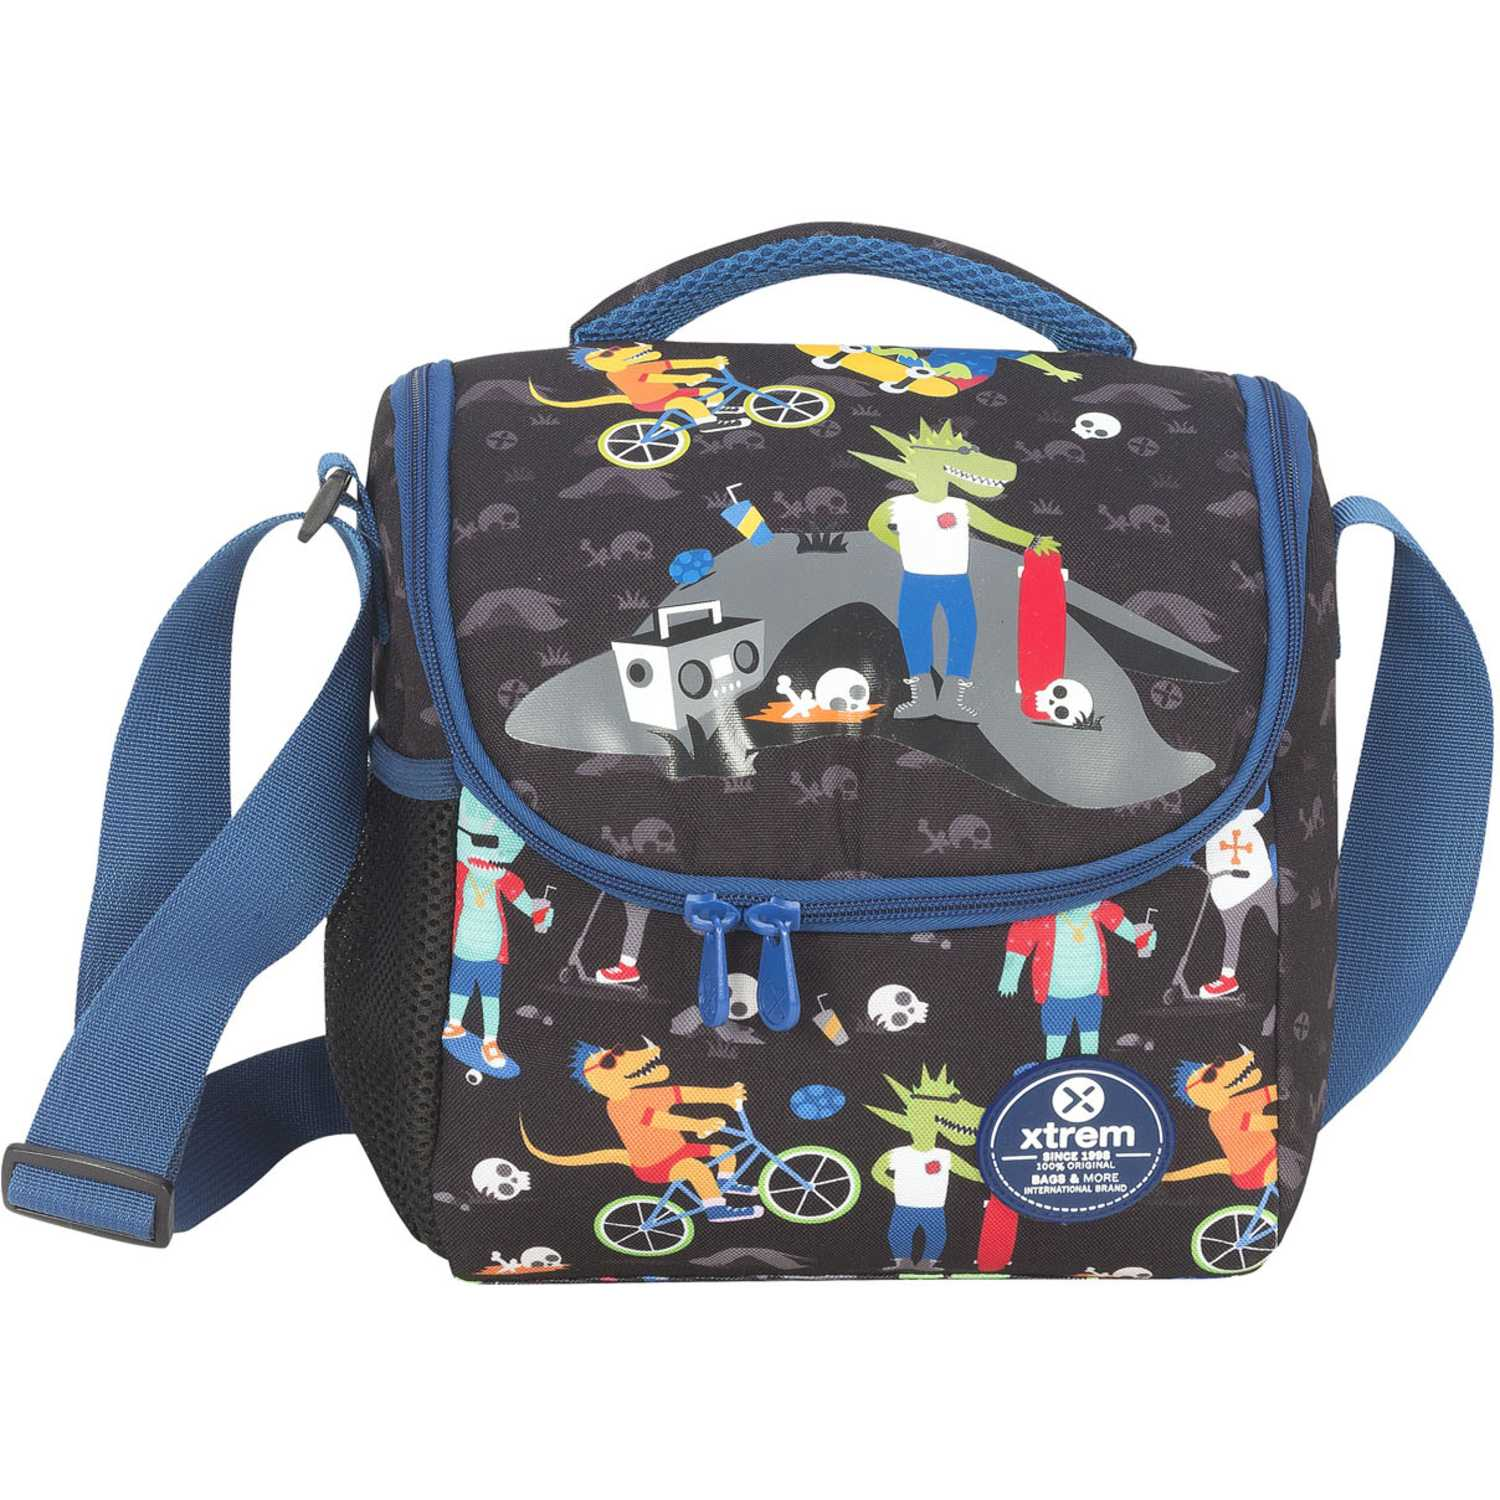 Lonchera de Niño Xtrem Azul / negro lunch bag dino skate break 846